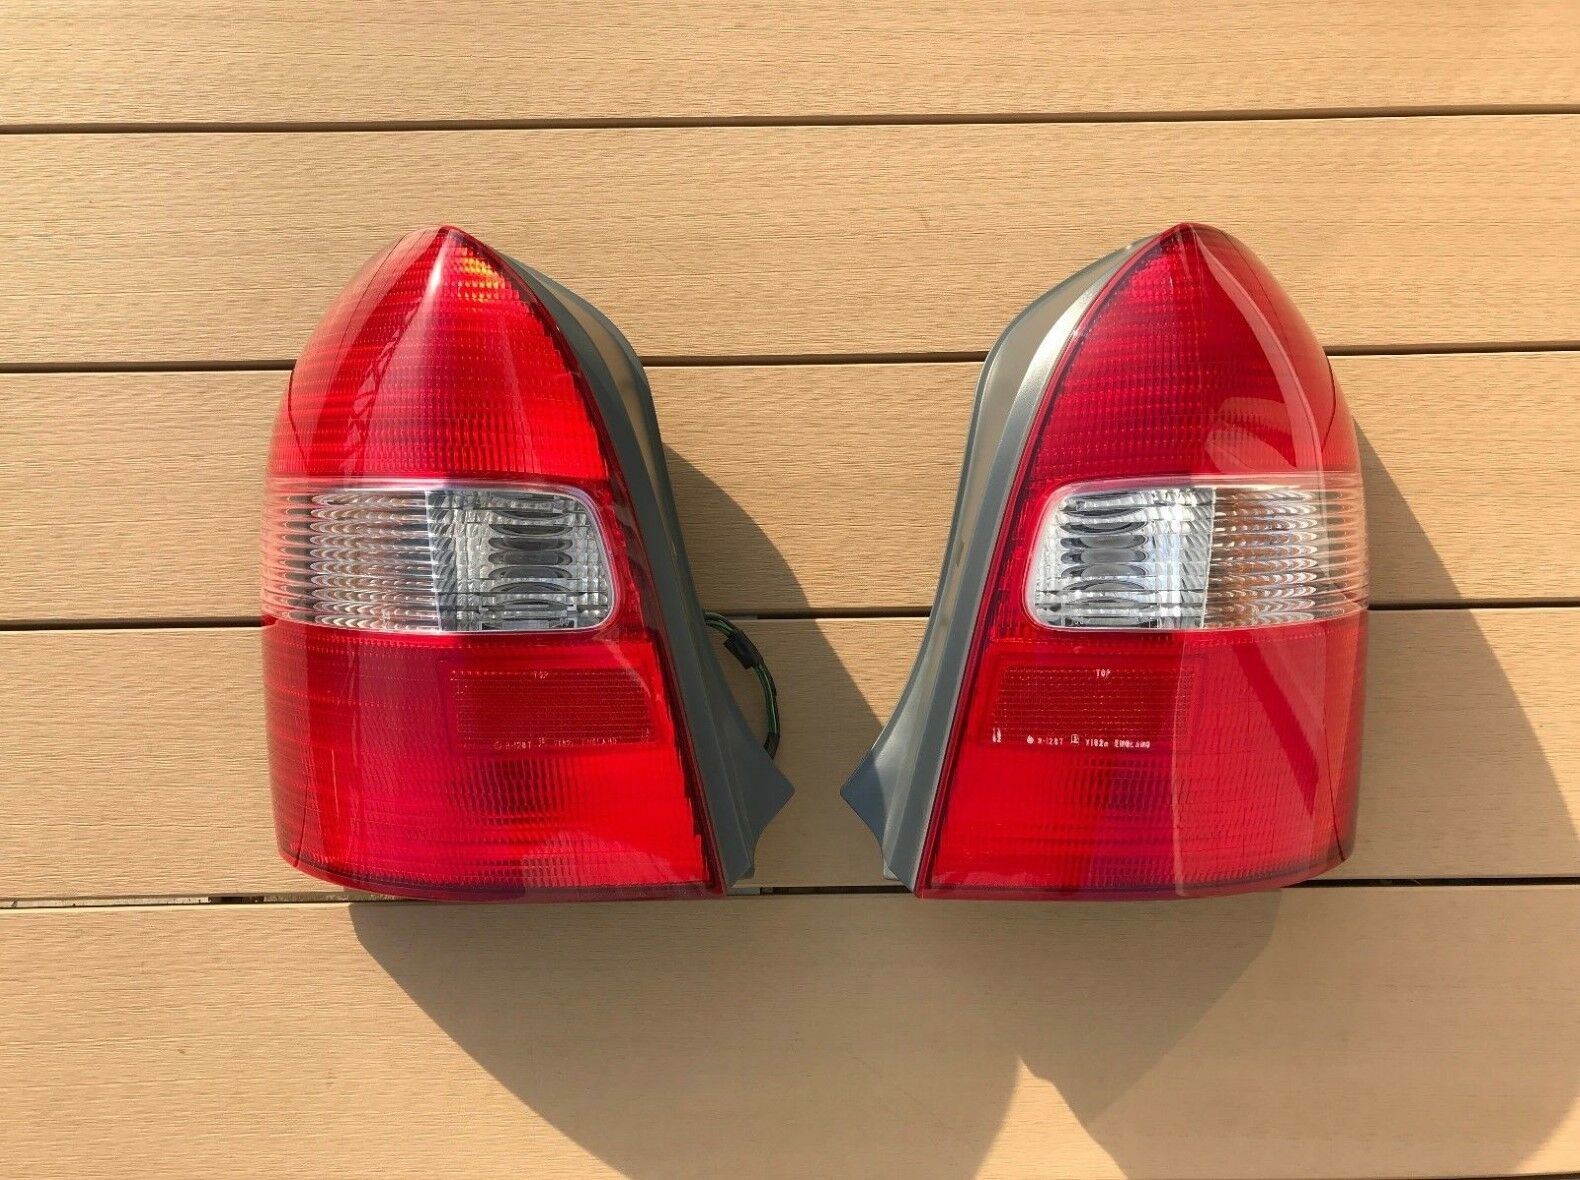 Jdm Mazda Familia Protege Protege5 Wagon Taillights Tail Lights 2002 5 Lamps Set Oem 1 Of 10free Shipping